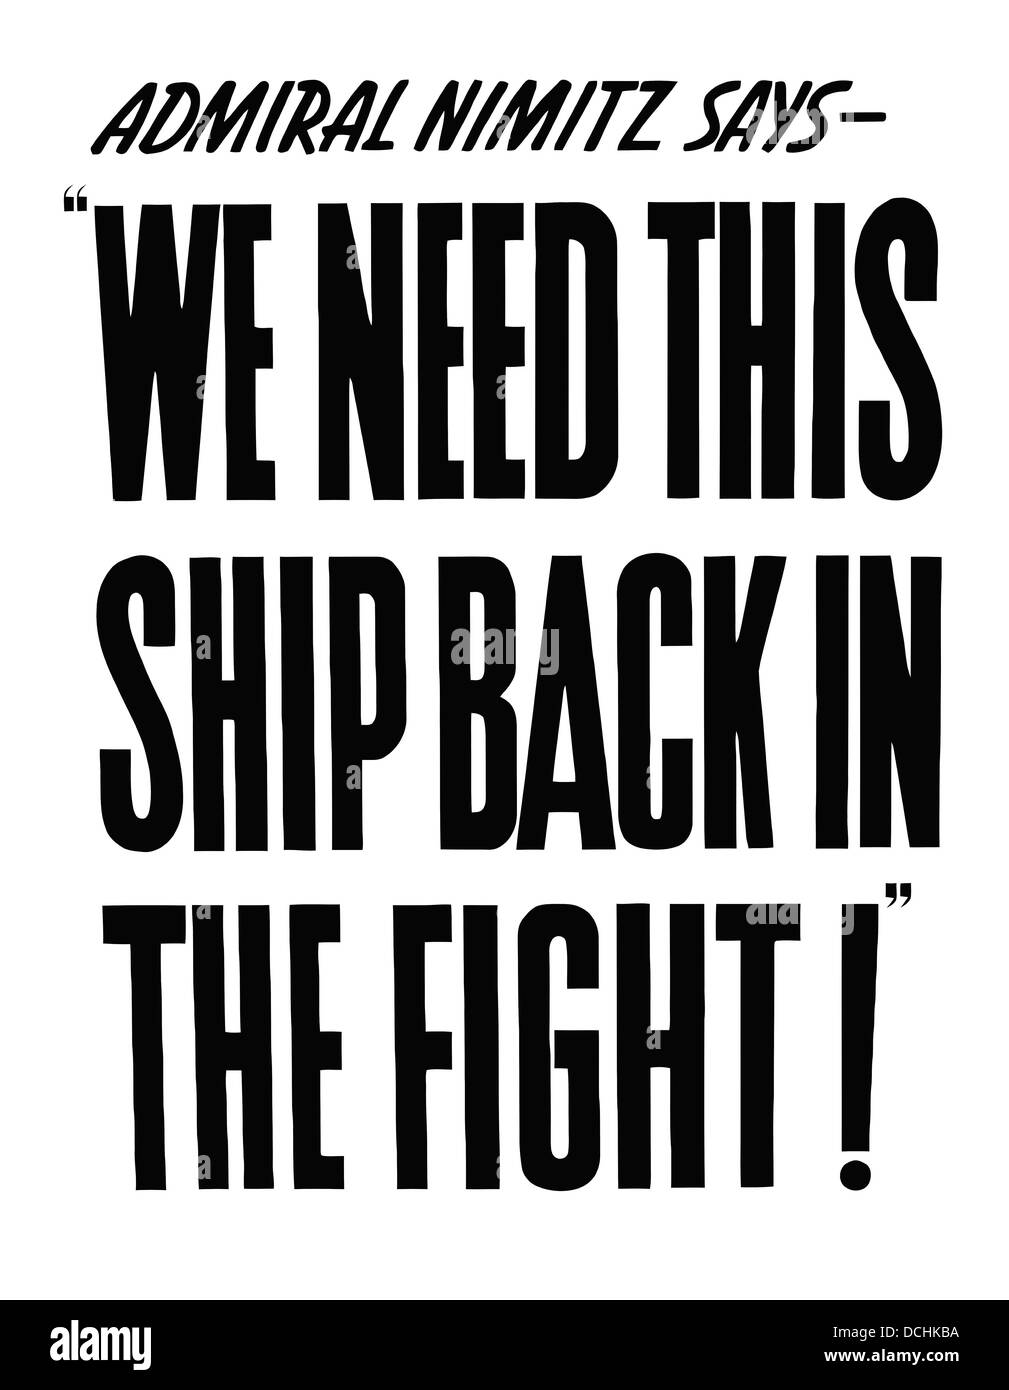 Vintage World War II propaganda poster. It reads, Admiral Nimitz says - We Need This Ship Back In The Fight! - Stock Image